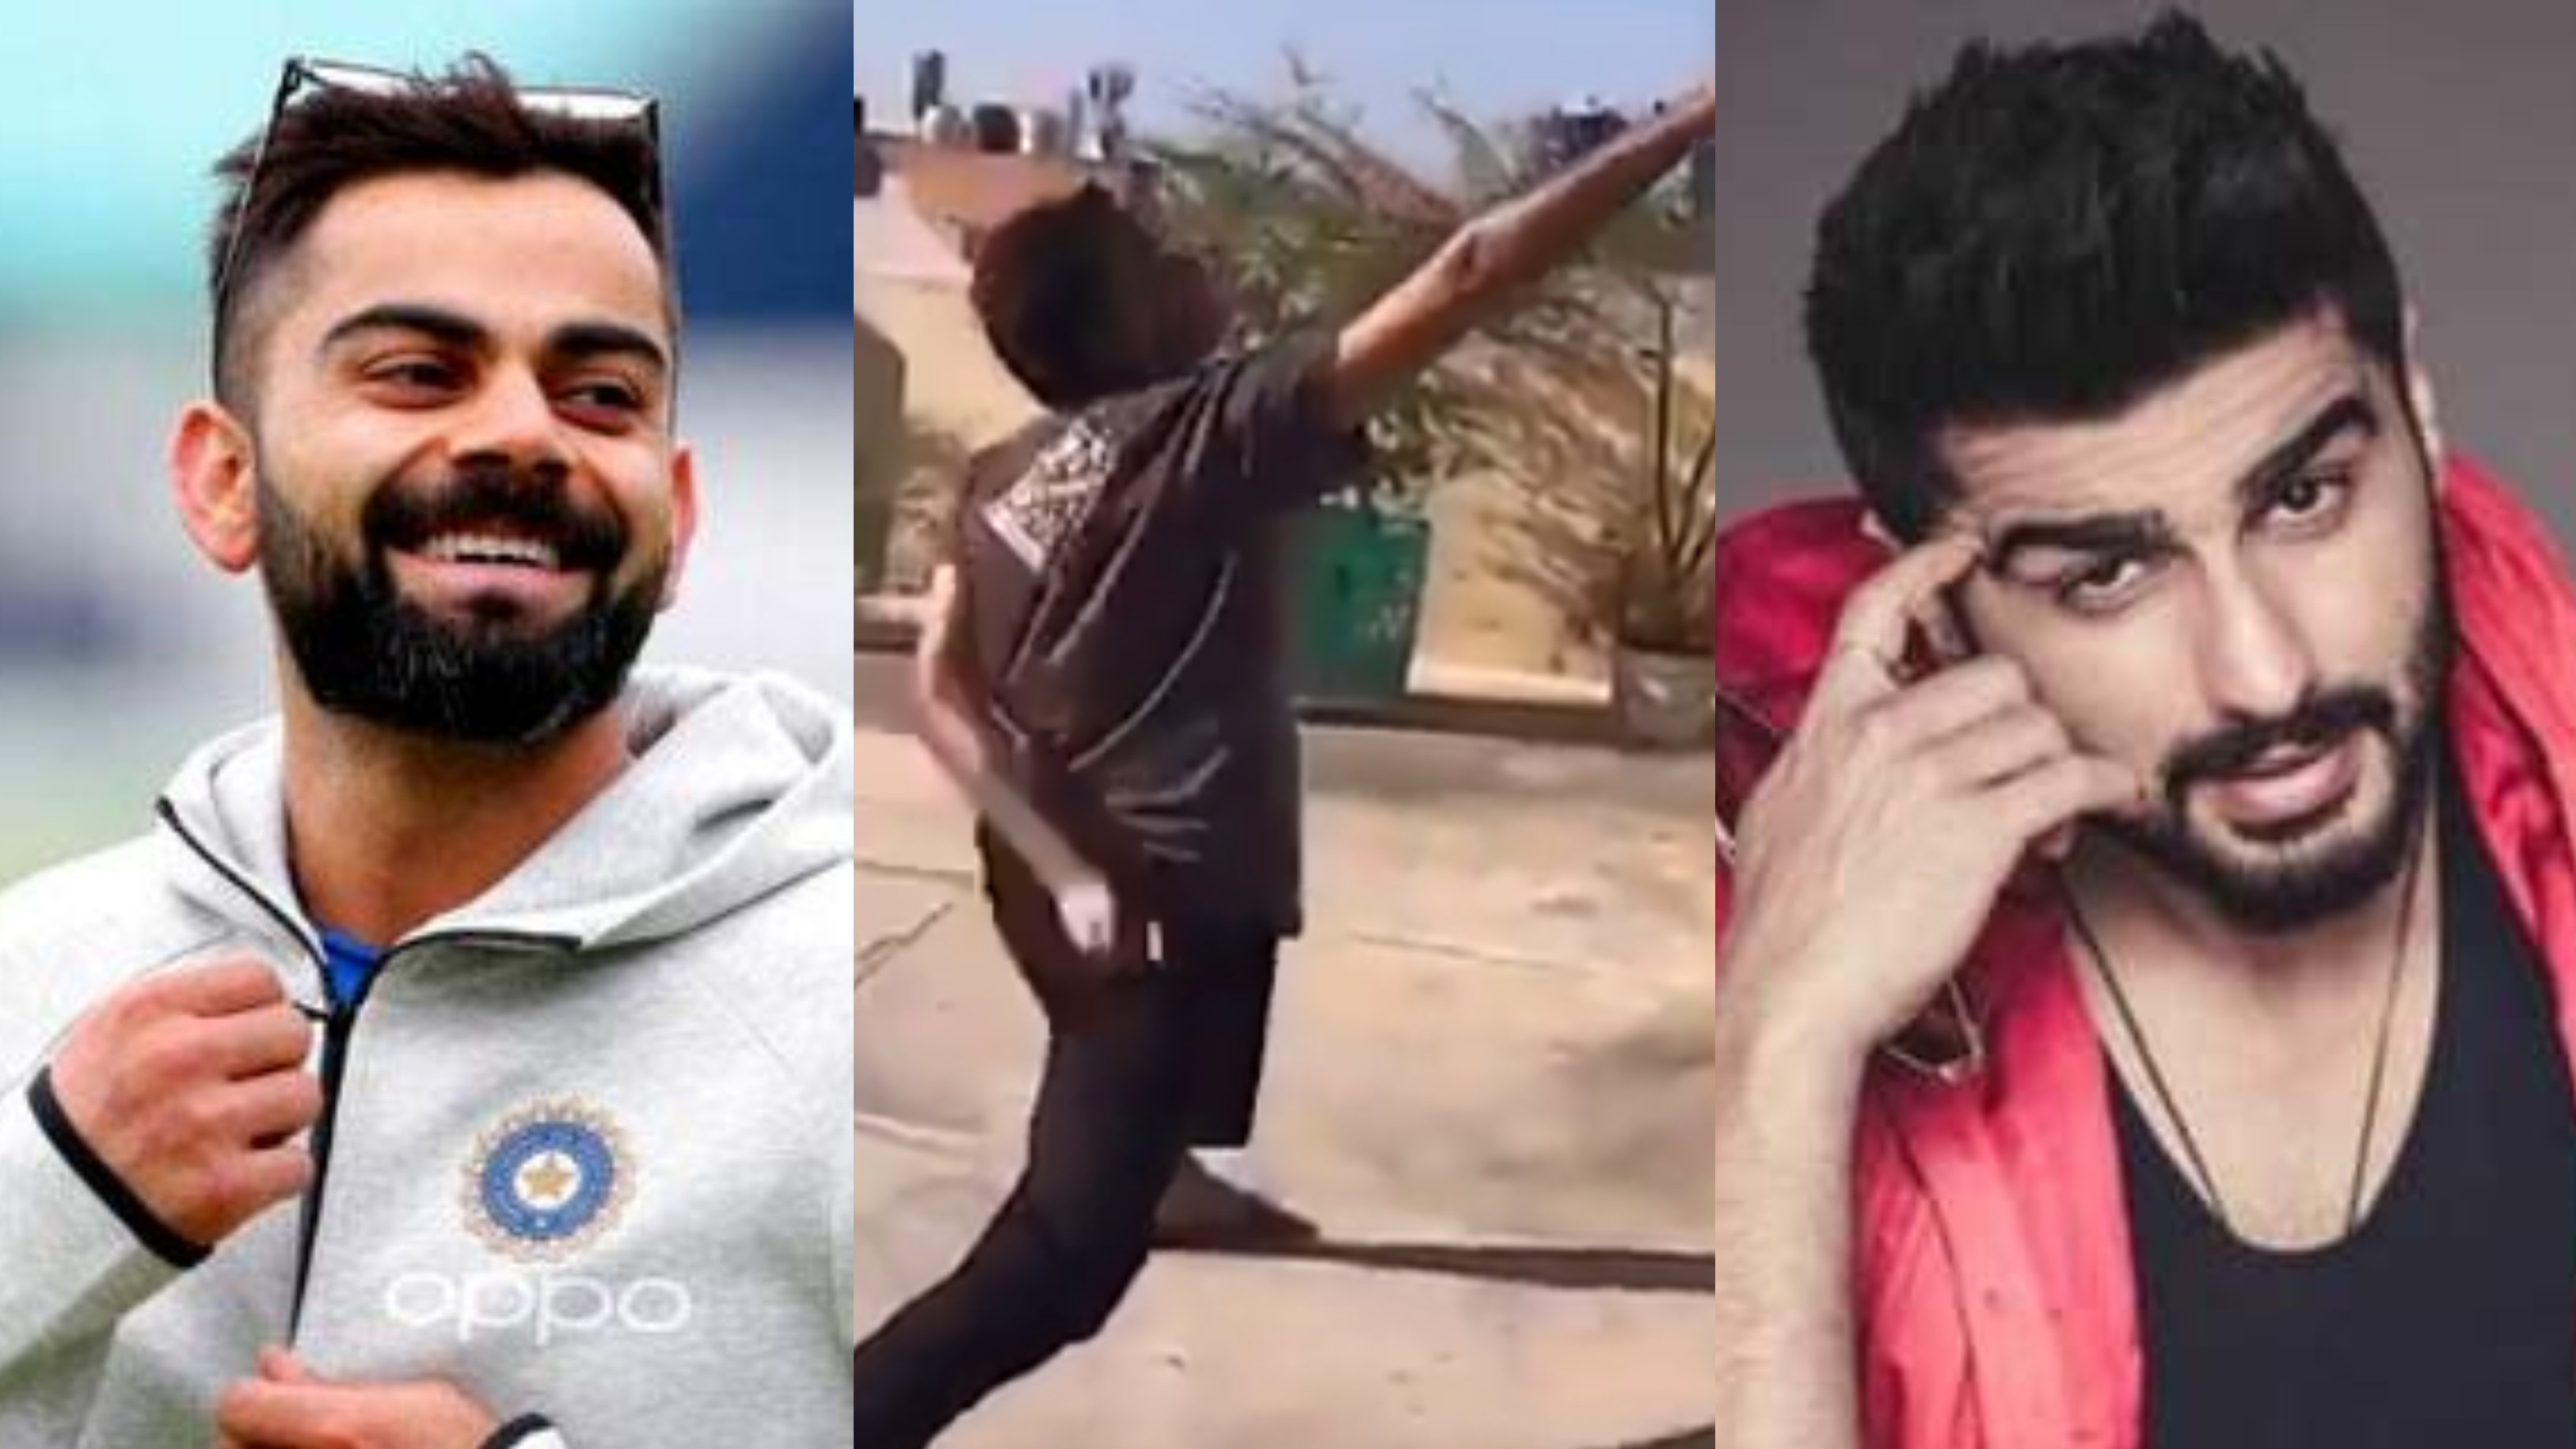 WATCH - Arjun Kapoor shares a funny cricket video; asks Virat Kohli